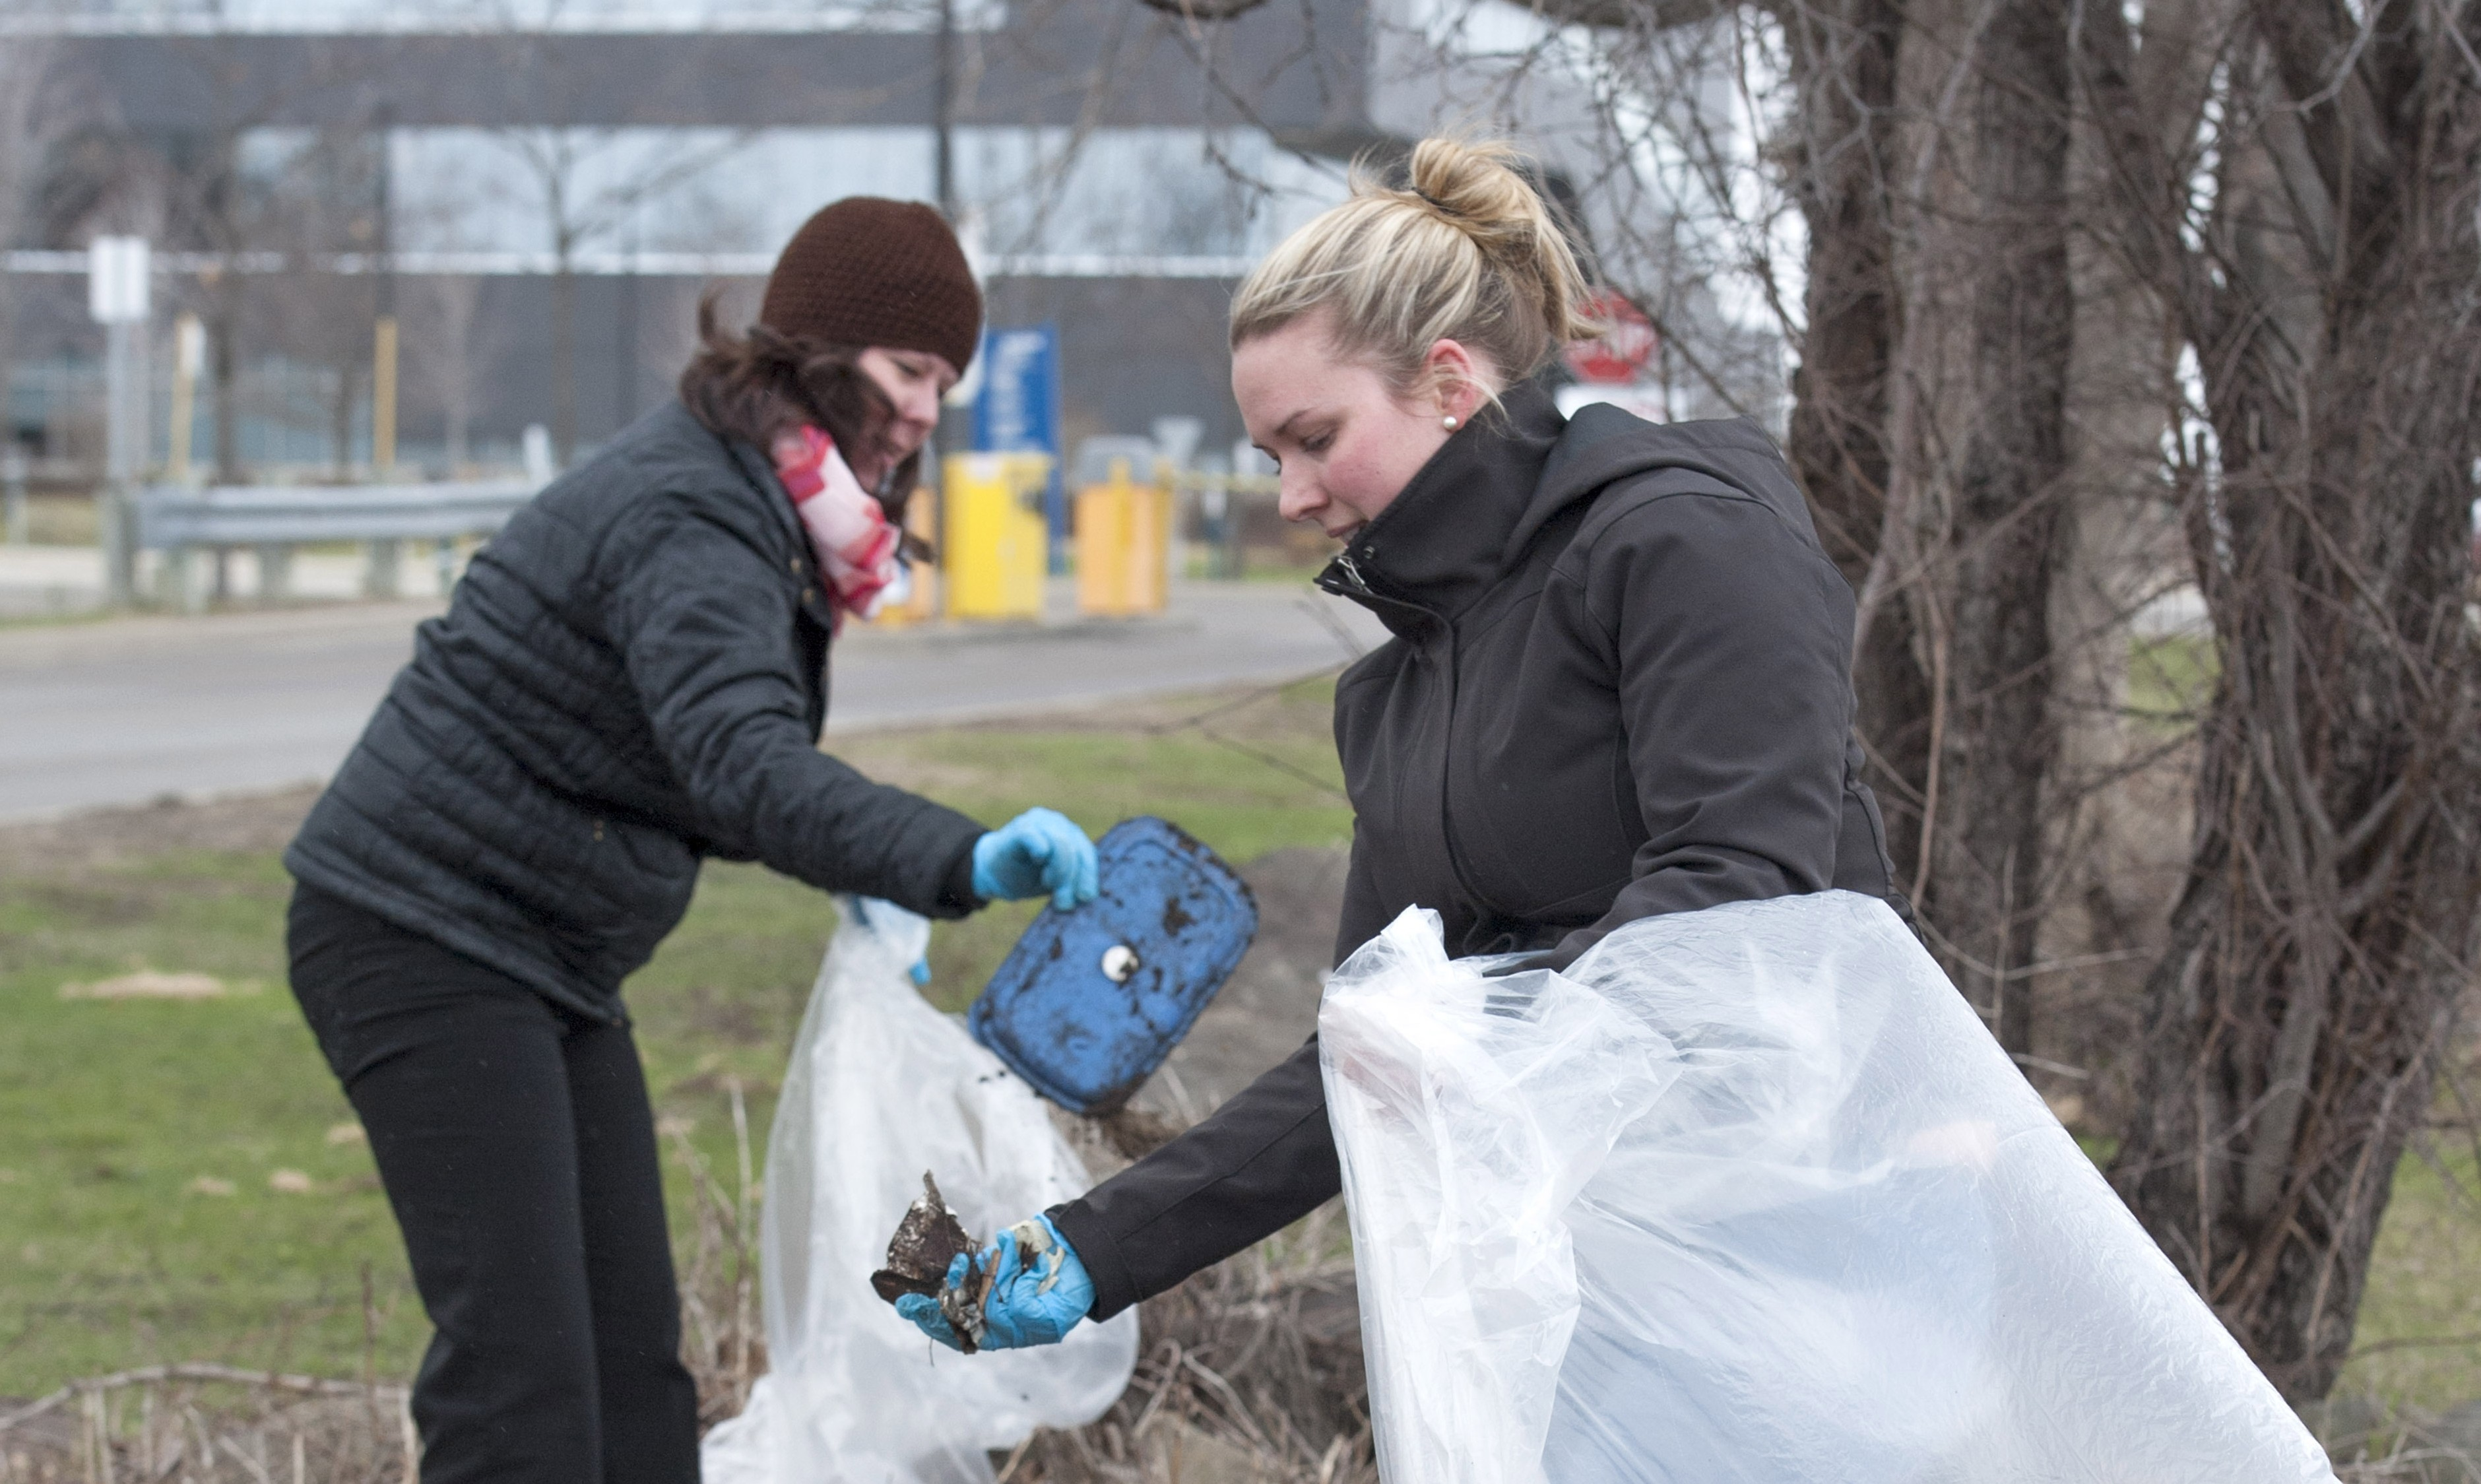 Sara Tuck, left, and Angela Bertram pick up garbage at the Barrie Campus as part of Georgian College's two-hour campus cleanup on Earth Day, April 22, 2015. More than 100 people braved the cold and sleet to tidy up the college's Barrie, Orillia, Owen Sound and Midland campuses, collecting over 20 bags of garbage. (Handout-Georgian College/Doug Crawford)